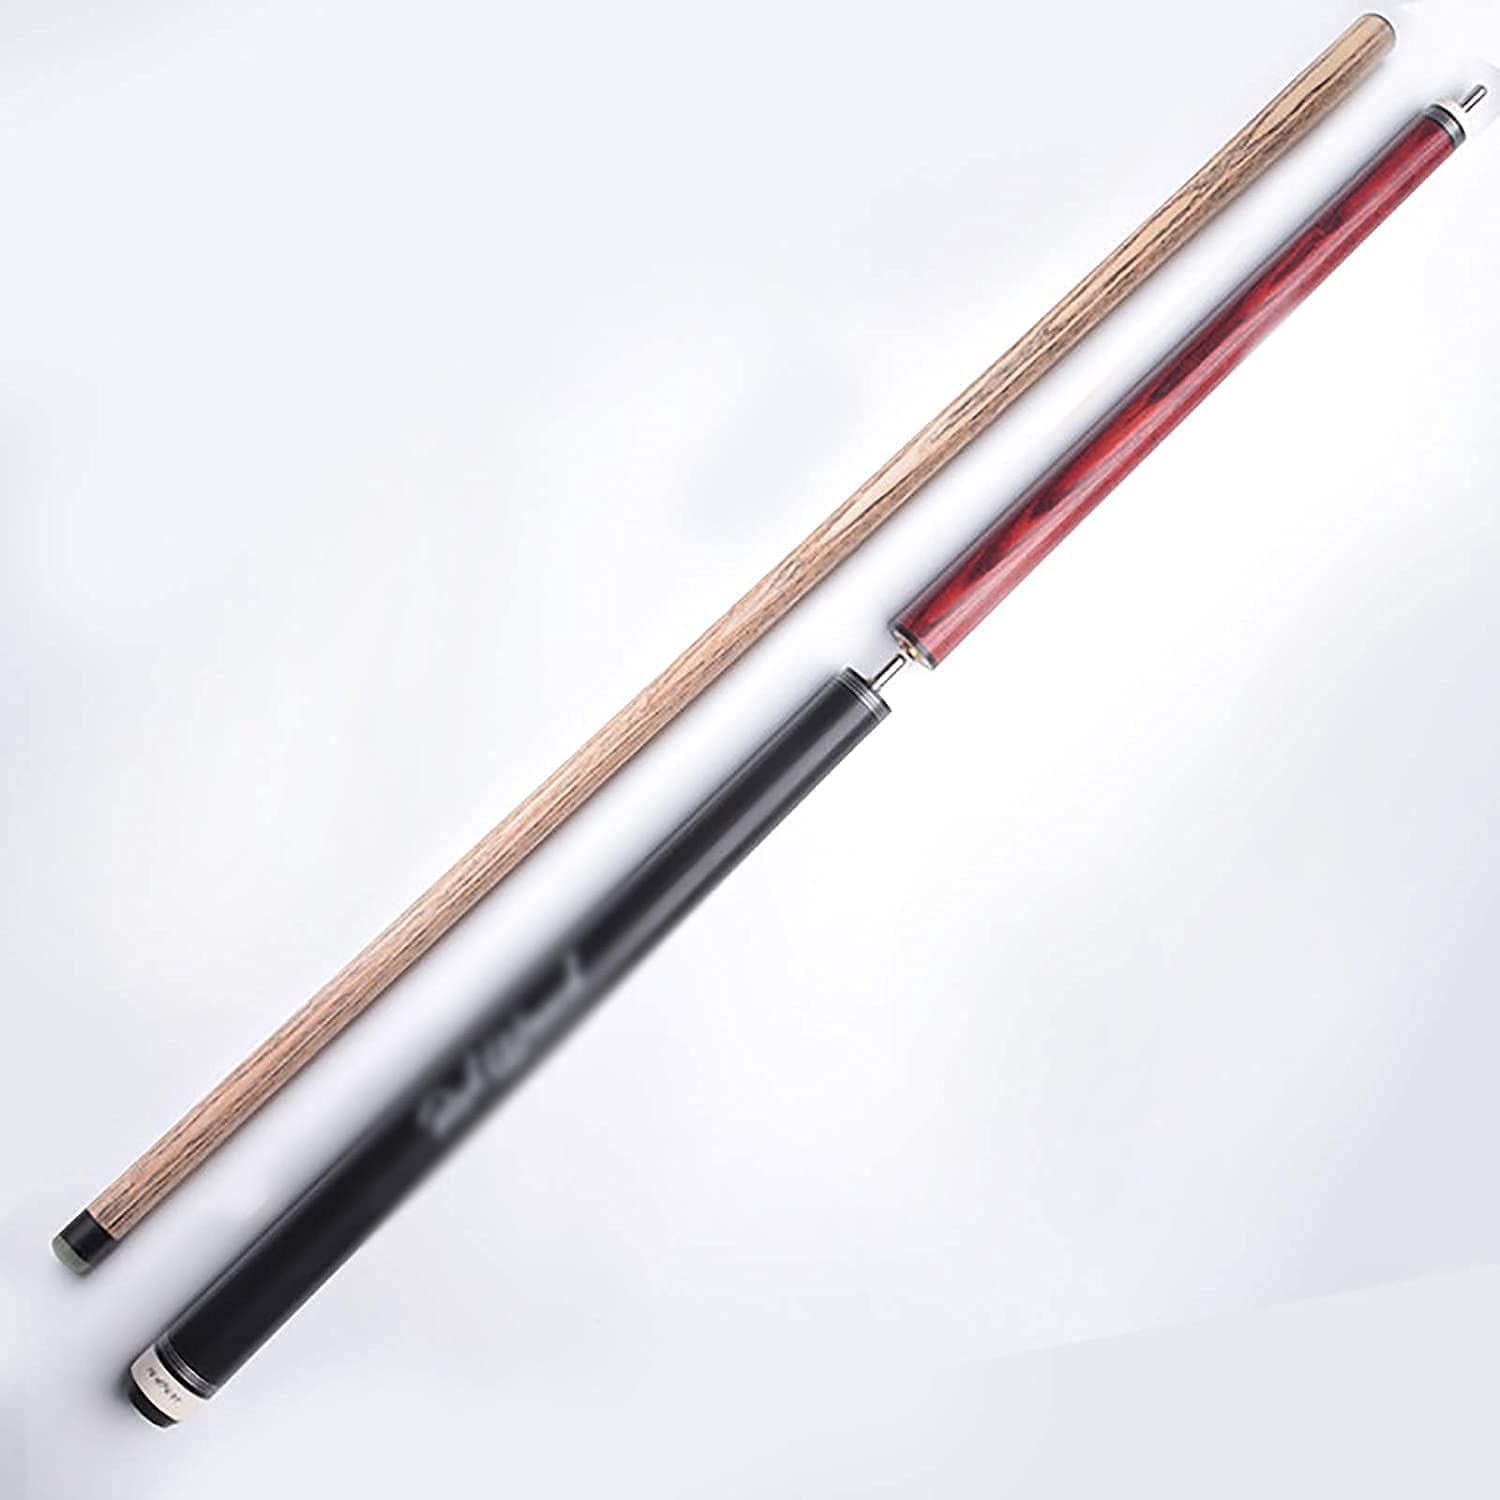 YAOJIA Pool Many popular brands cues Sticks 3 4 wi Jointed Snooker Cue Billiard Max 51% OFF